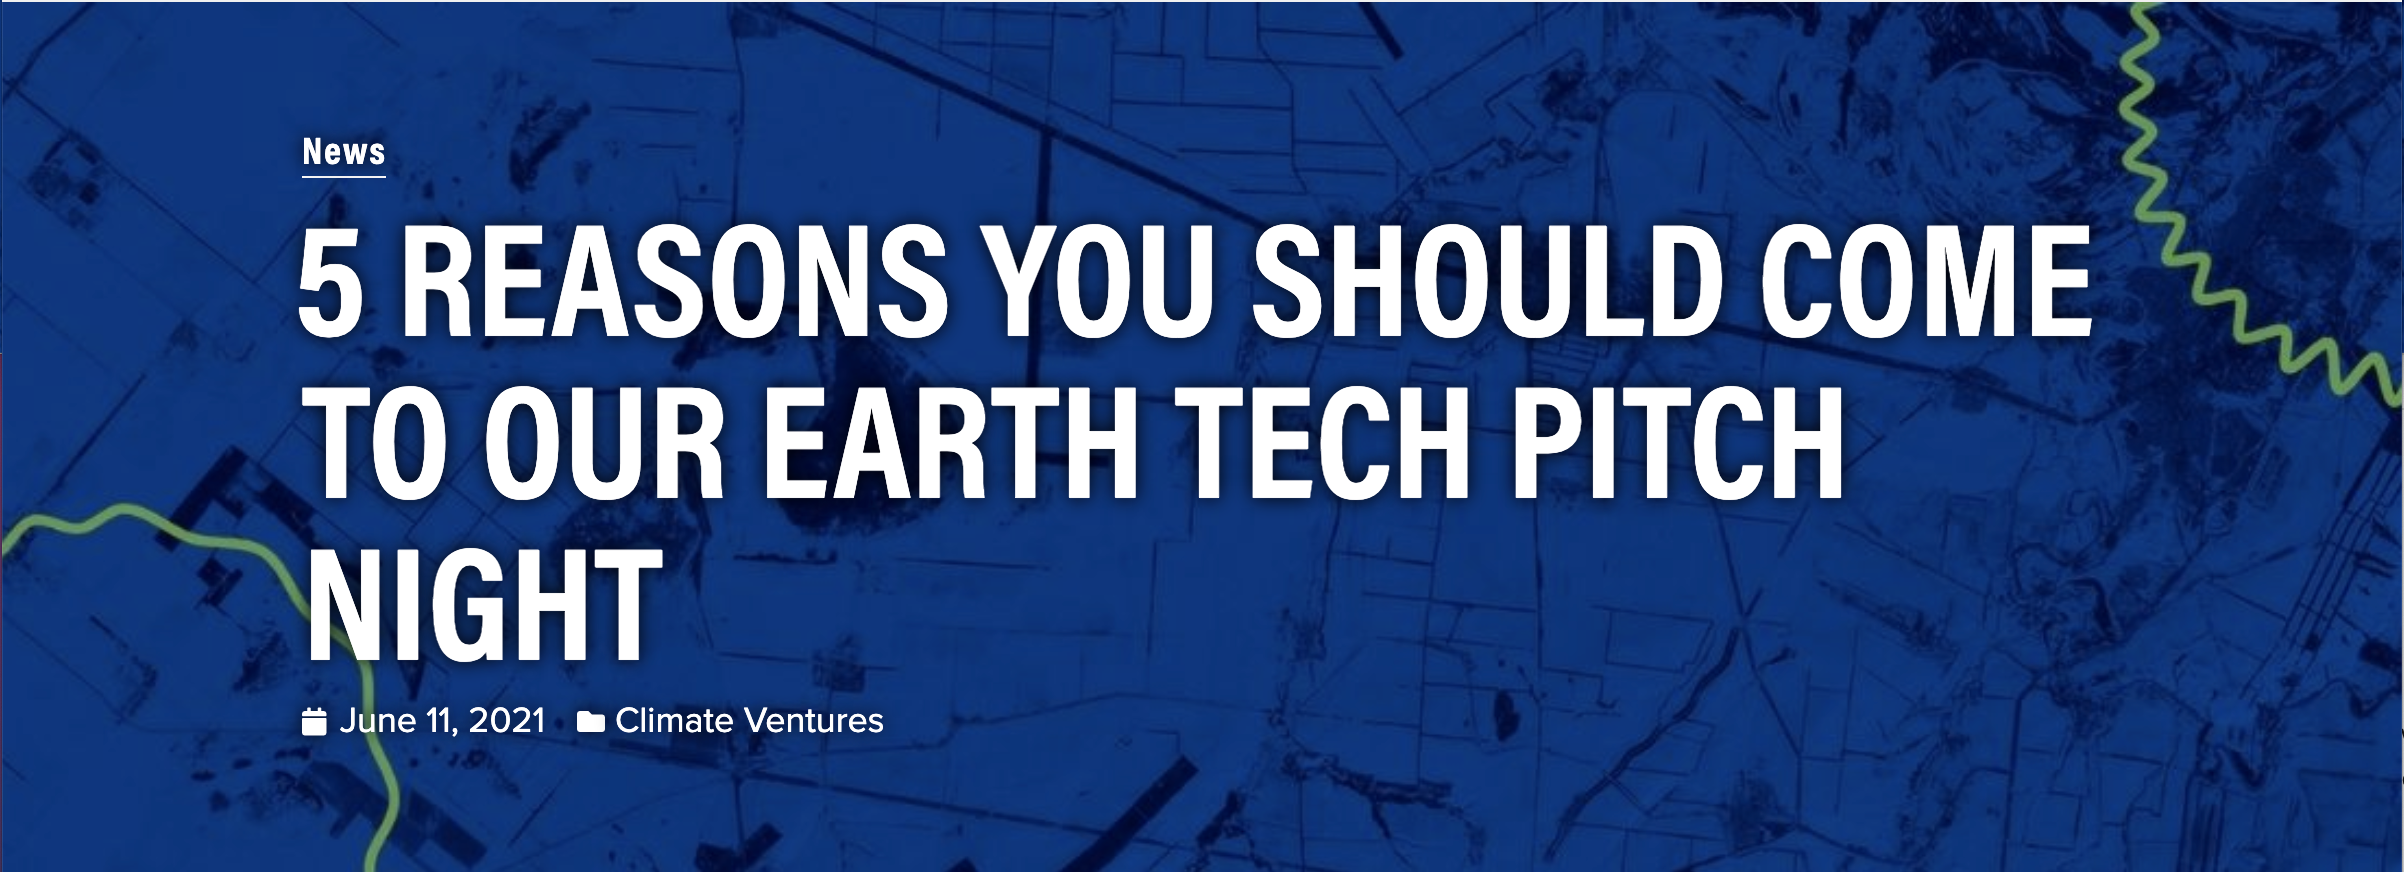 Five Reasons You Should Come to Our Earth Tech Pitch Night